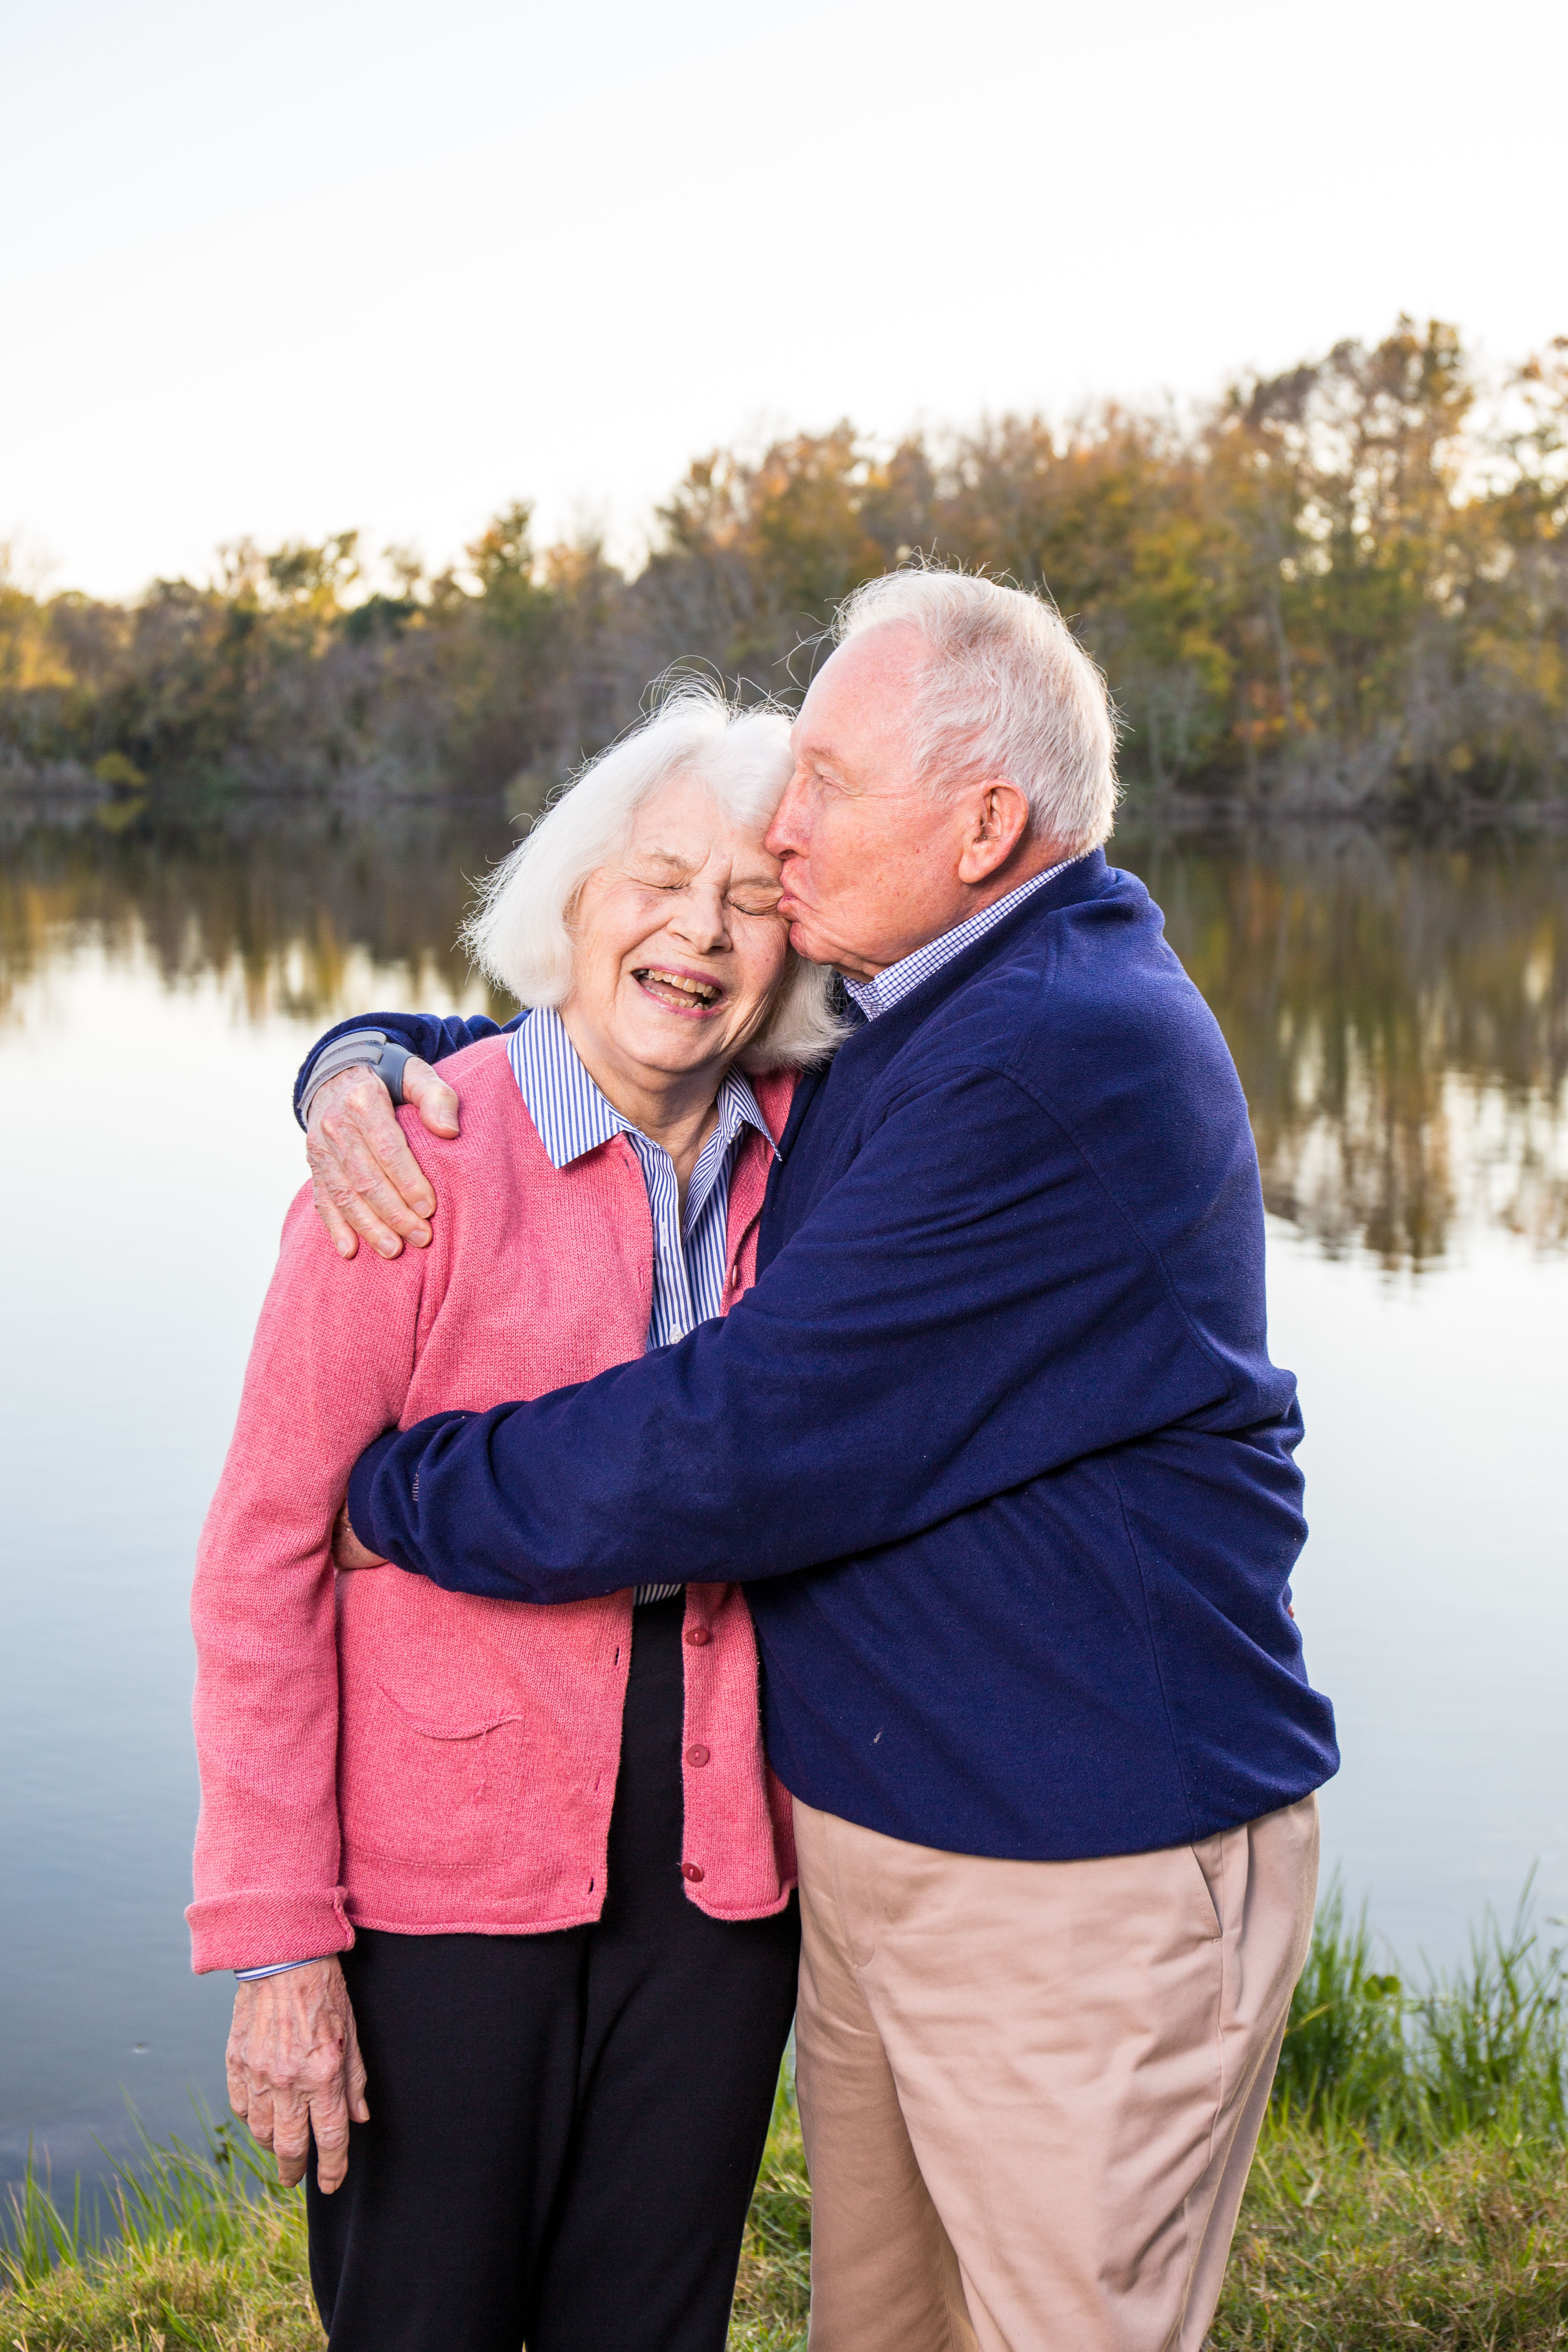 Photo of the Wiltshire at Lake Alice. Jim is hugging Susan and kissing her forehead.